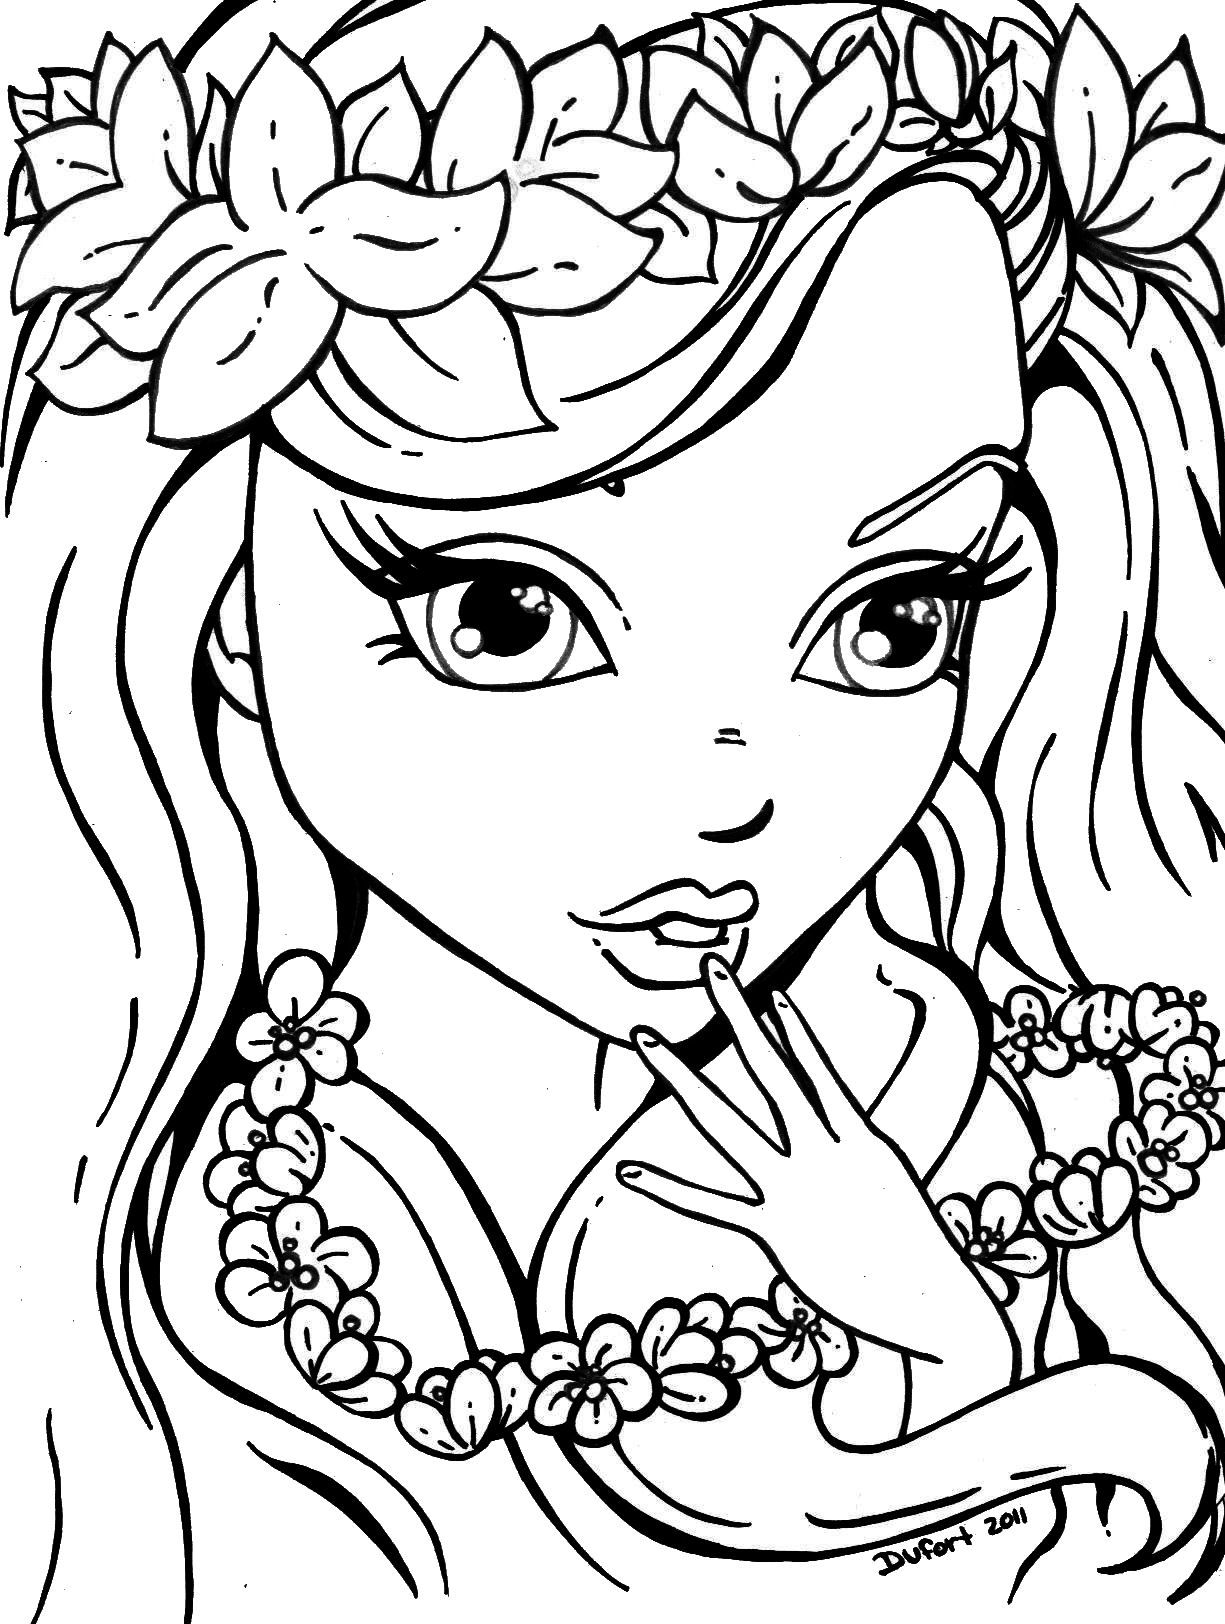 Printable Coloring Pages For Girls : The Internet has today become a ...